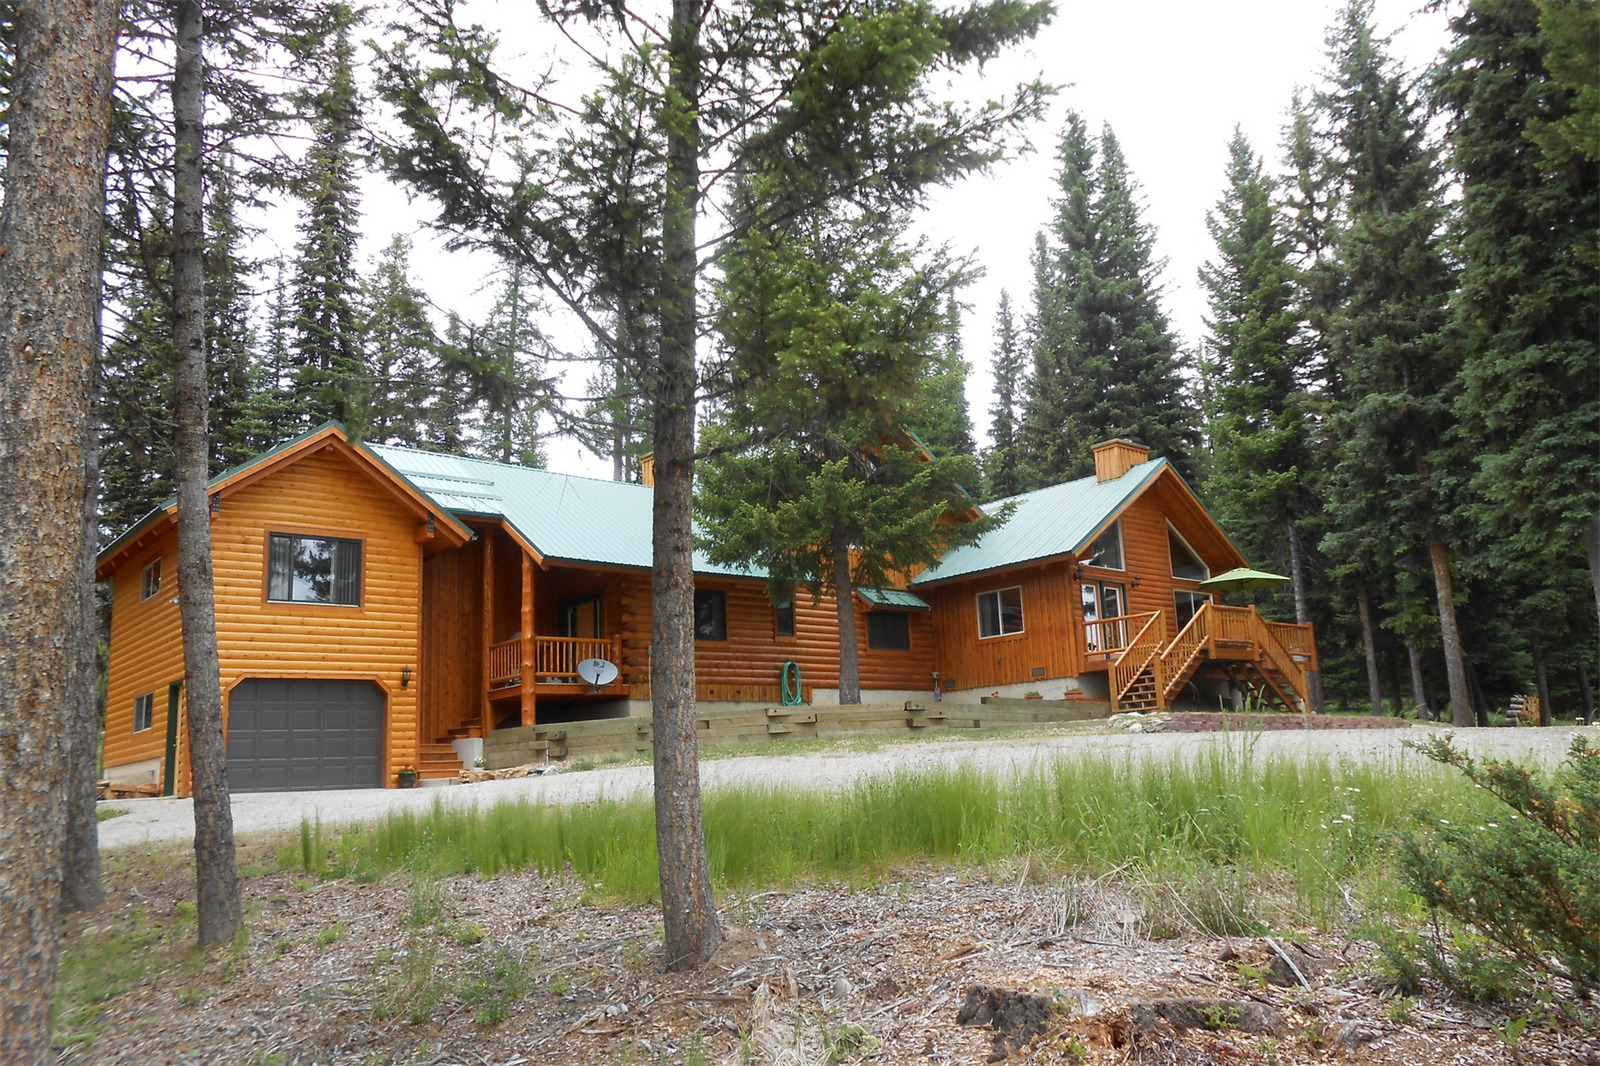 4301 Star Meadows Rd, Whitefish, MT